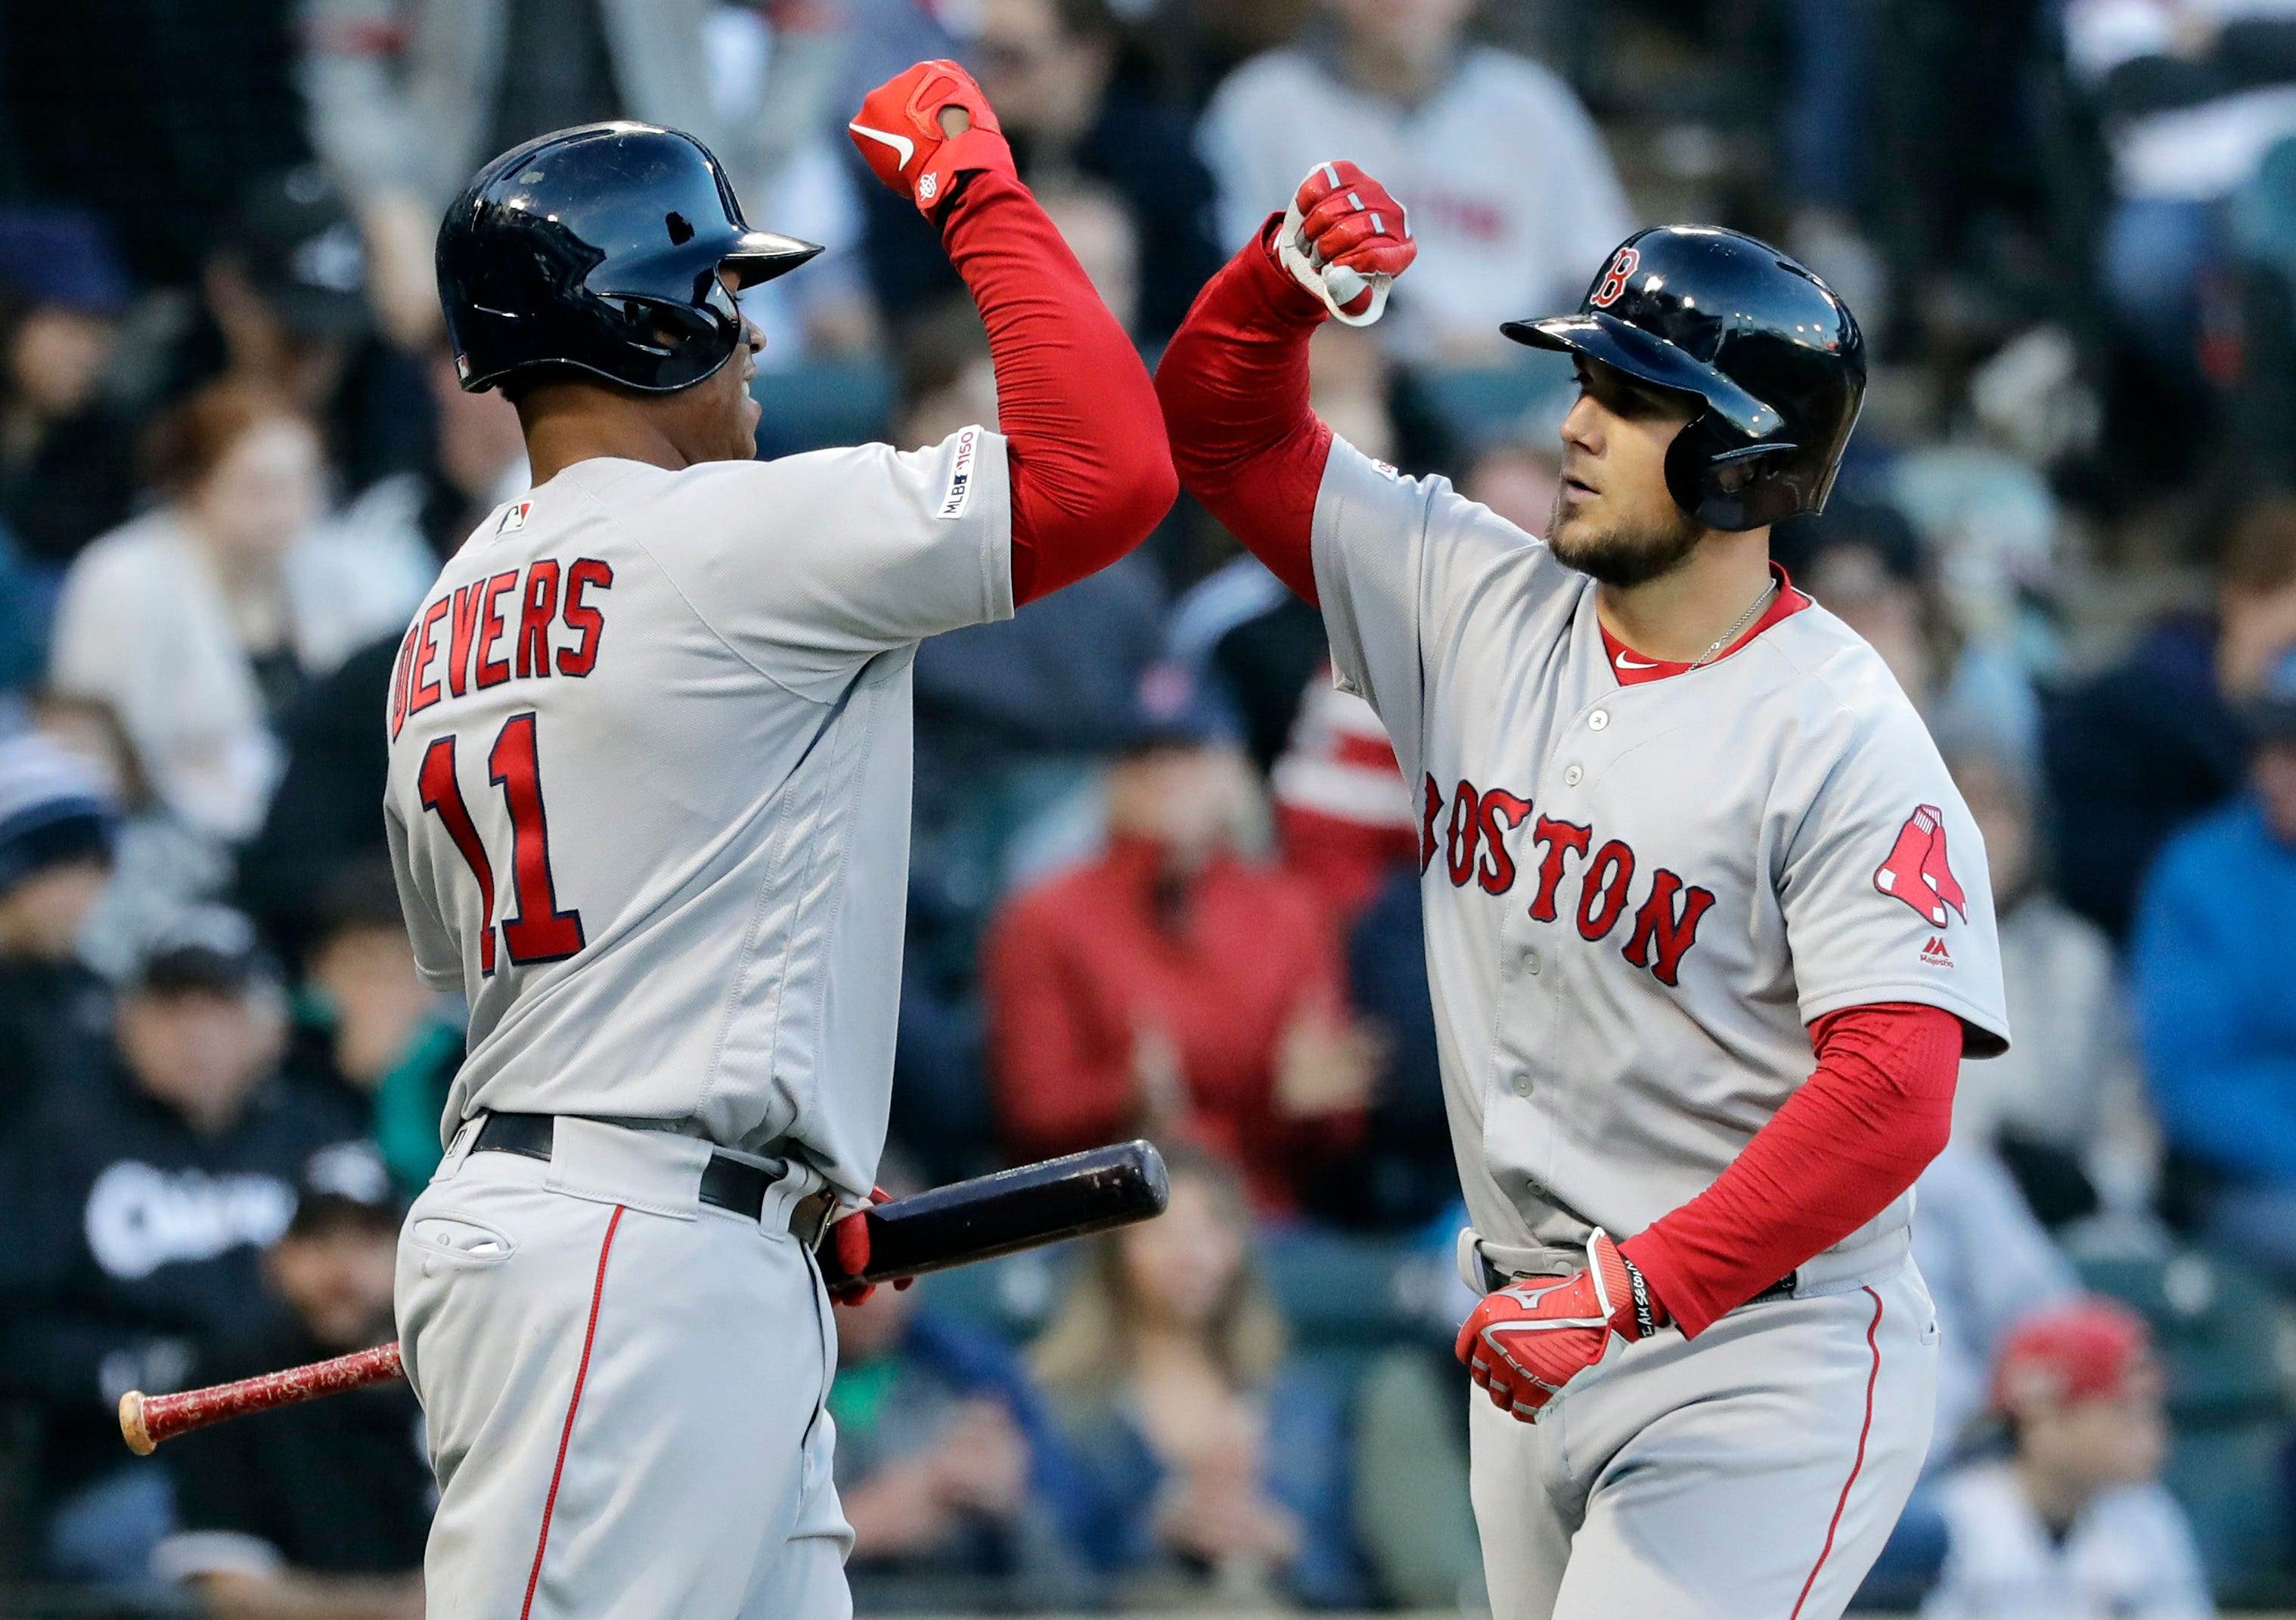 Red Sox get 10 hits in a row in 15-2 rout of White Sox